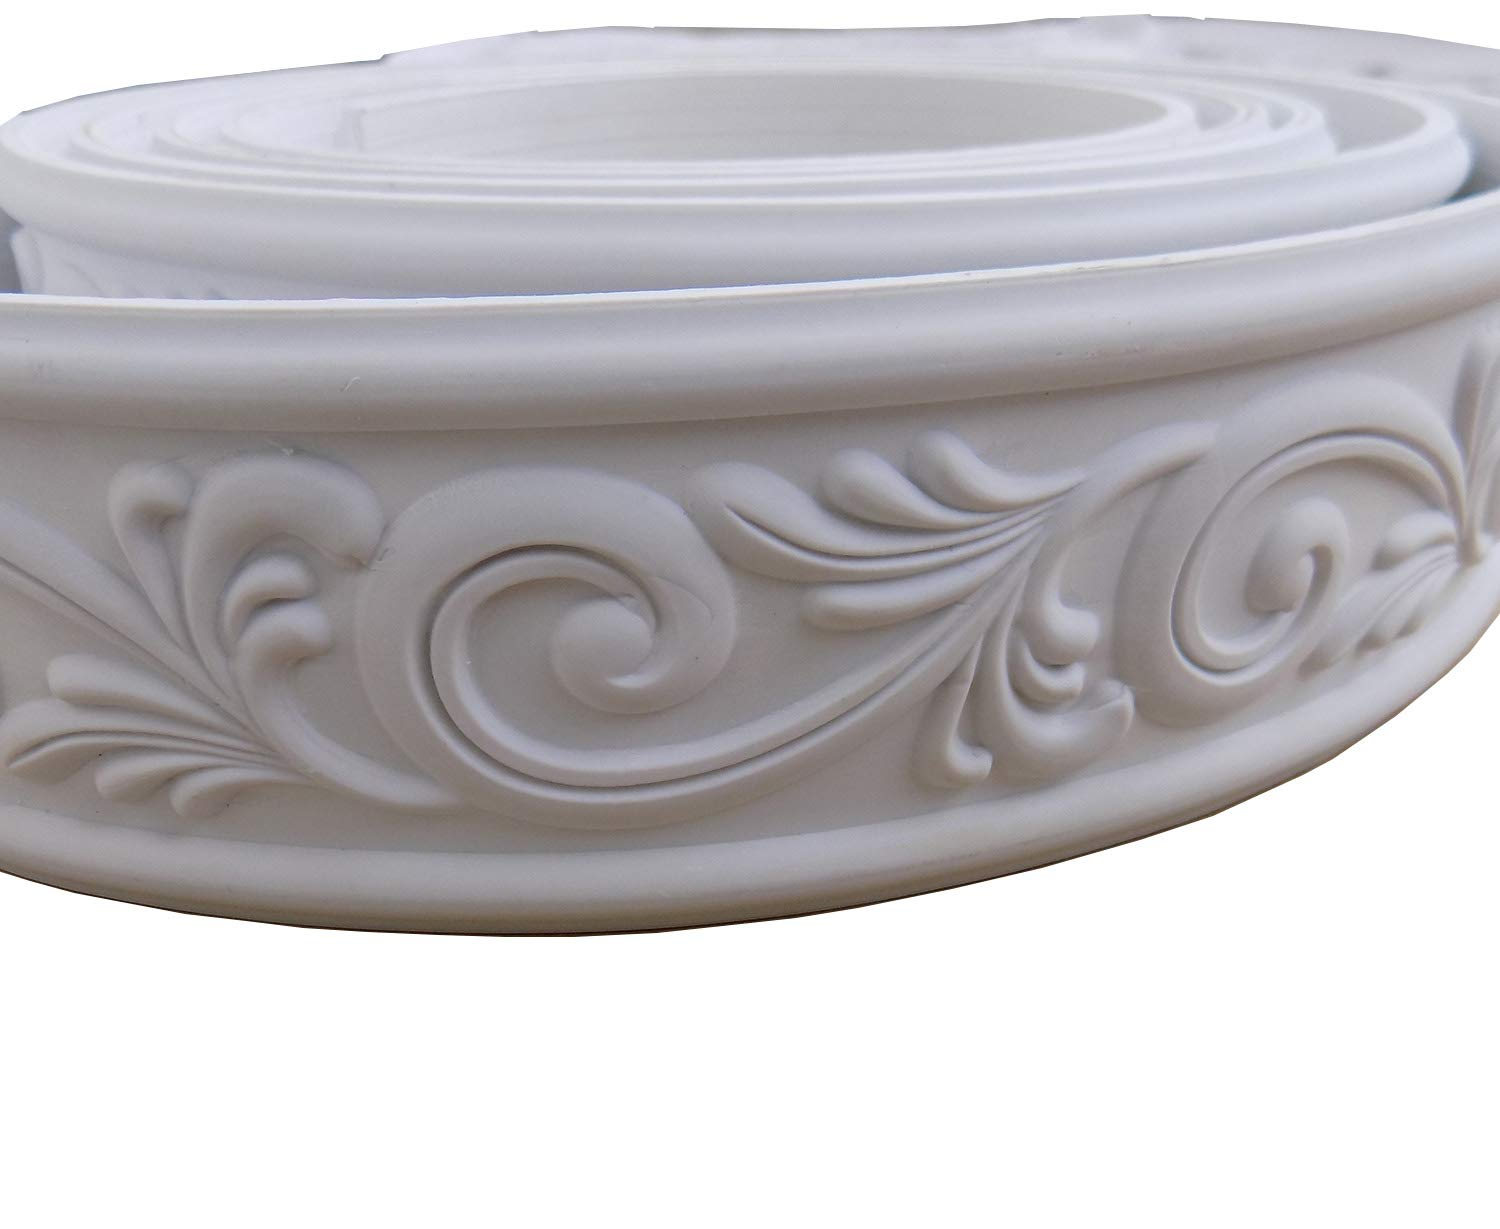 Home Decorate Modelling Crown Mouldings Trim Flexible Molding Ceiling Border Line Interior Decoration Wall Picture Edge Waist Door CasingCorners 2.36'' x 0.24'' x 115''